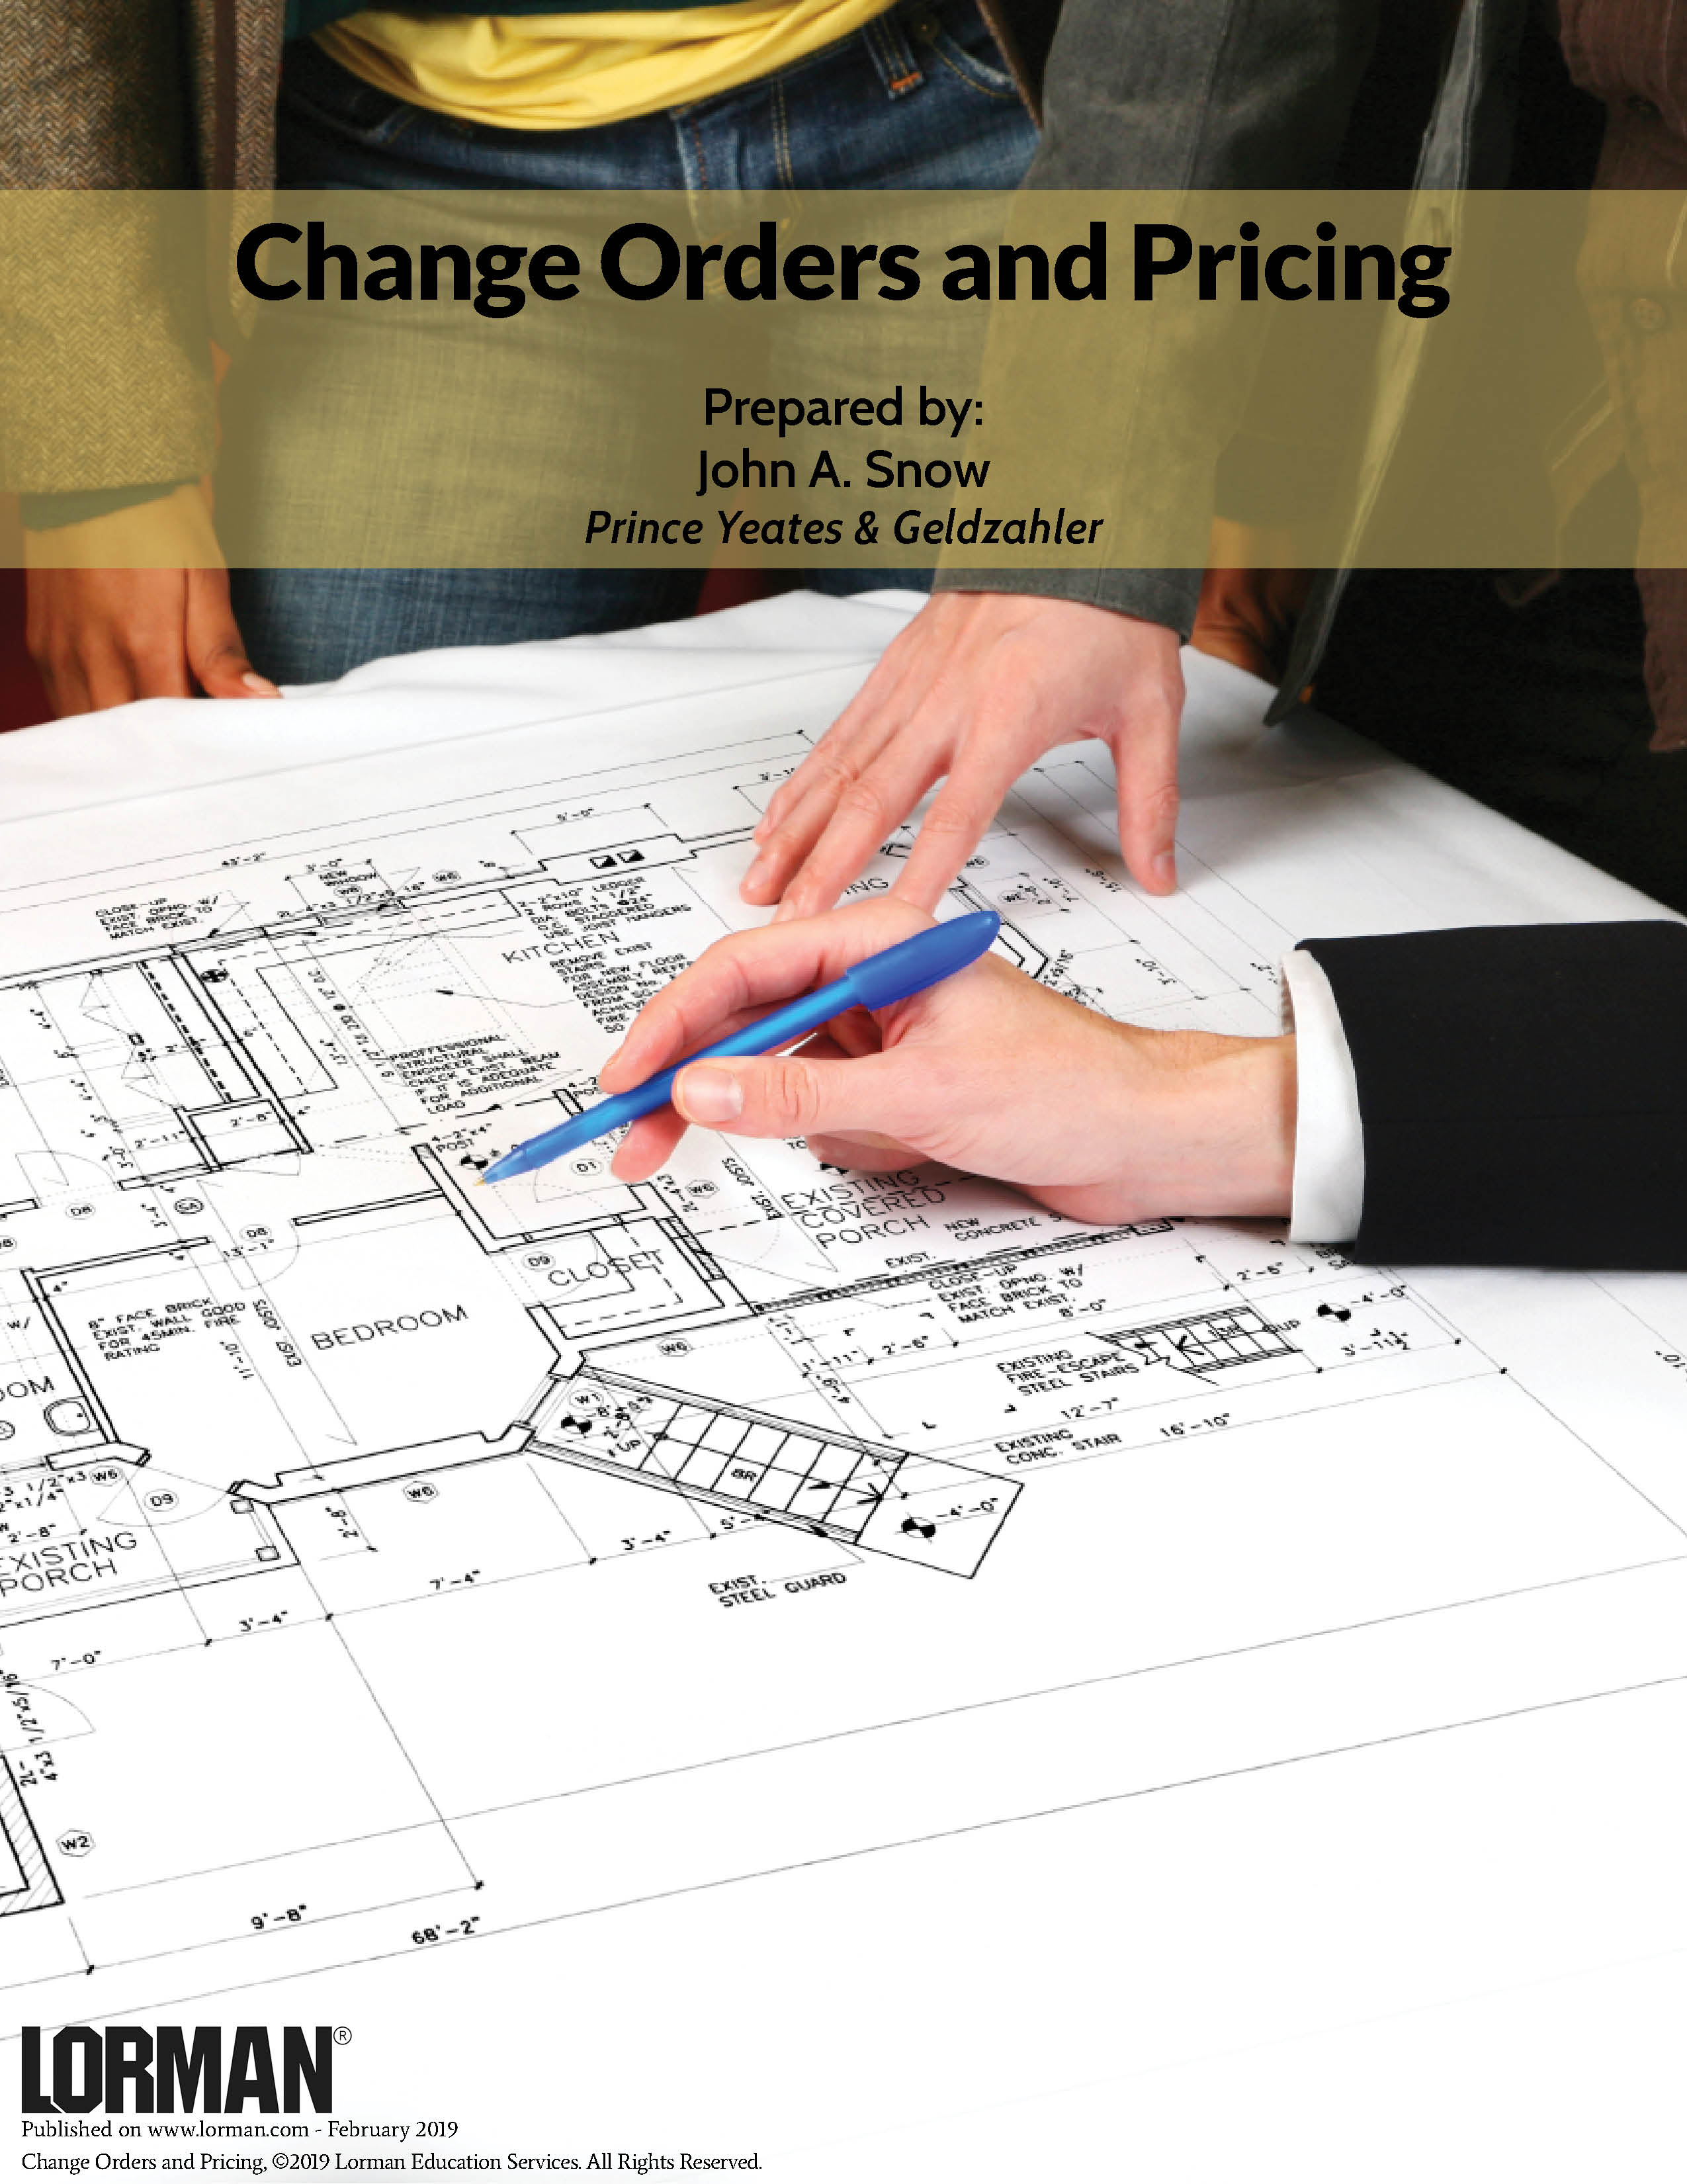 Change Orders and Pricing